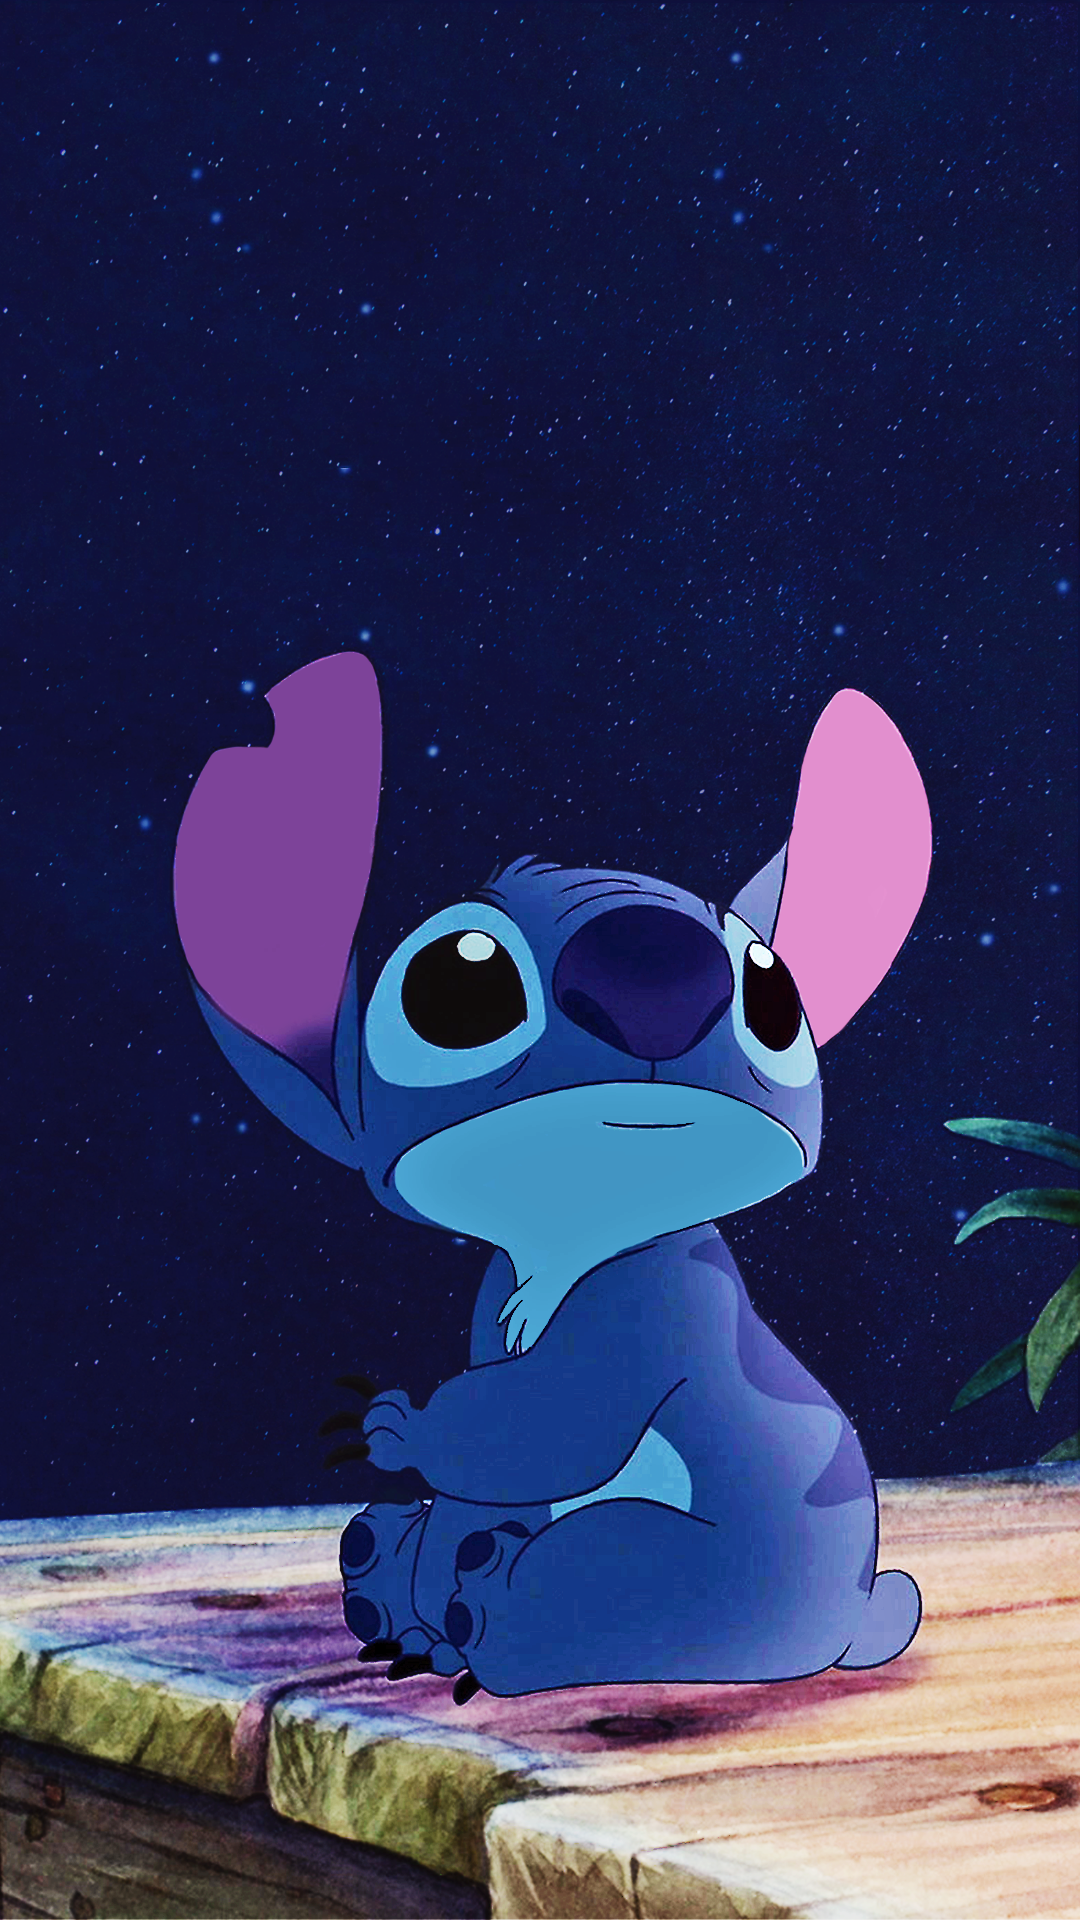 Lilo And Stitch Iphone Wallpapers Top Free Lilo And Stitch